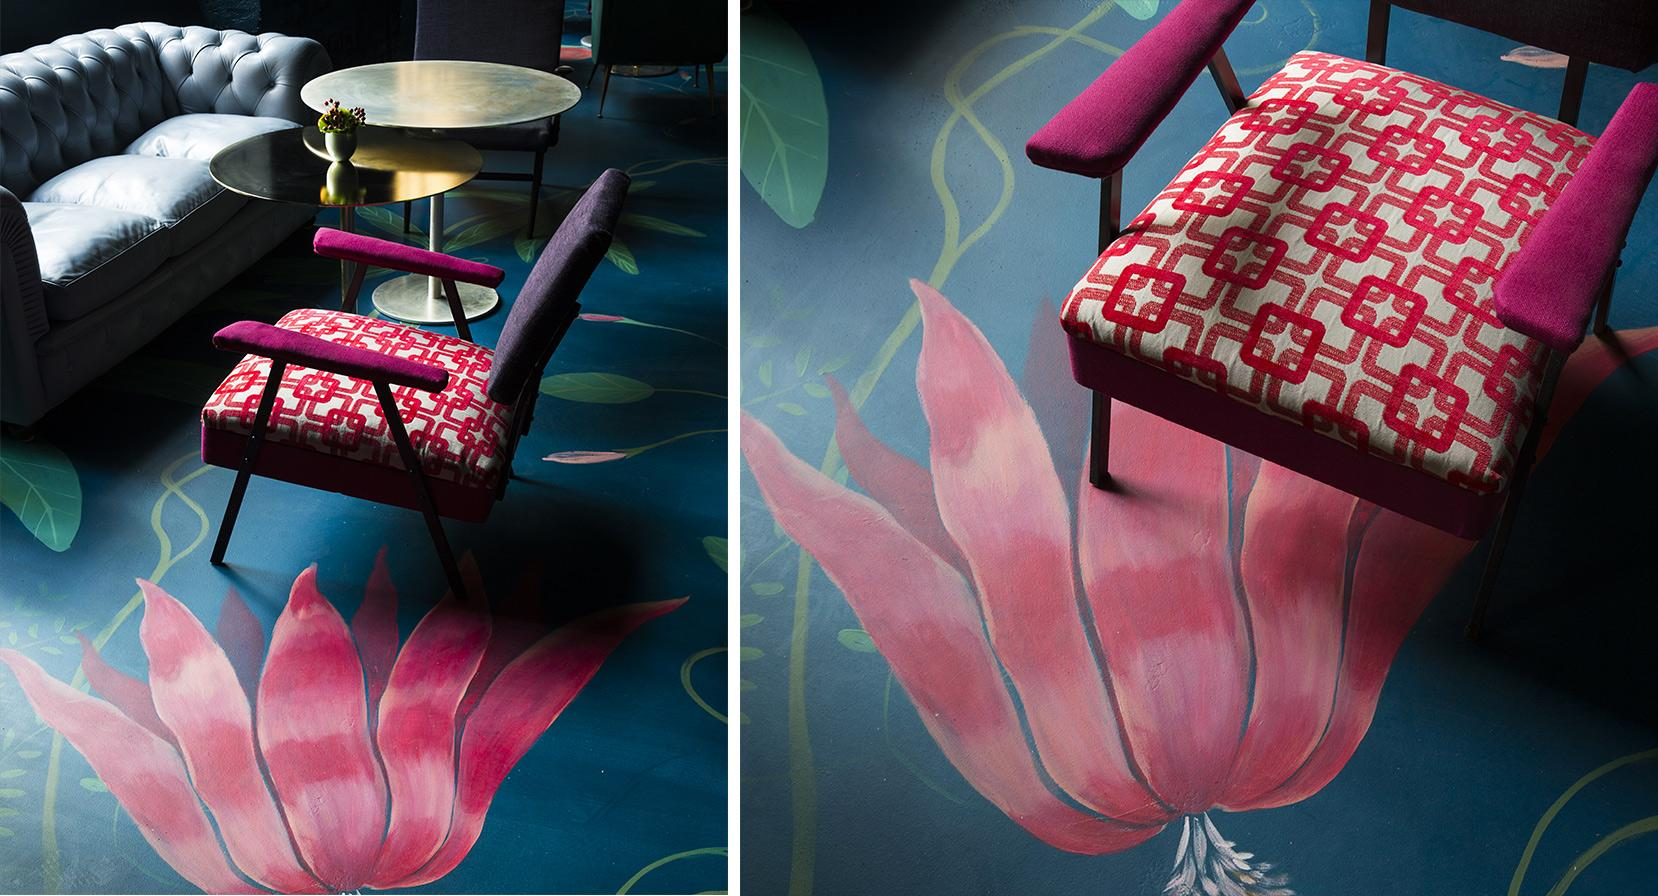 Westwing, Huan, Milano, Design, Colori, Cucina, Made in Italy